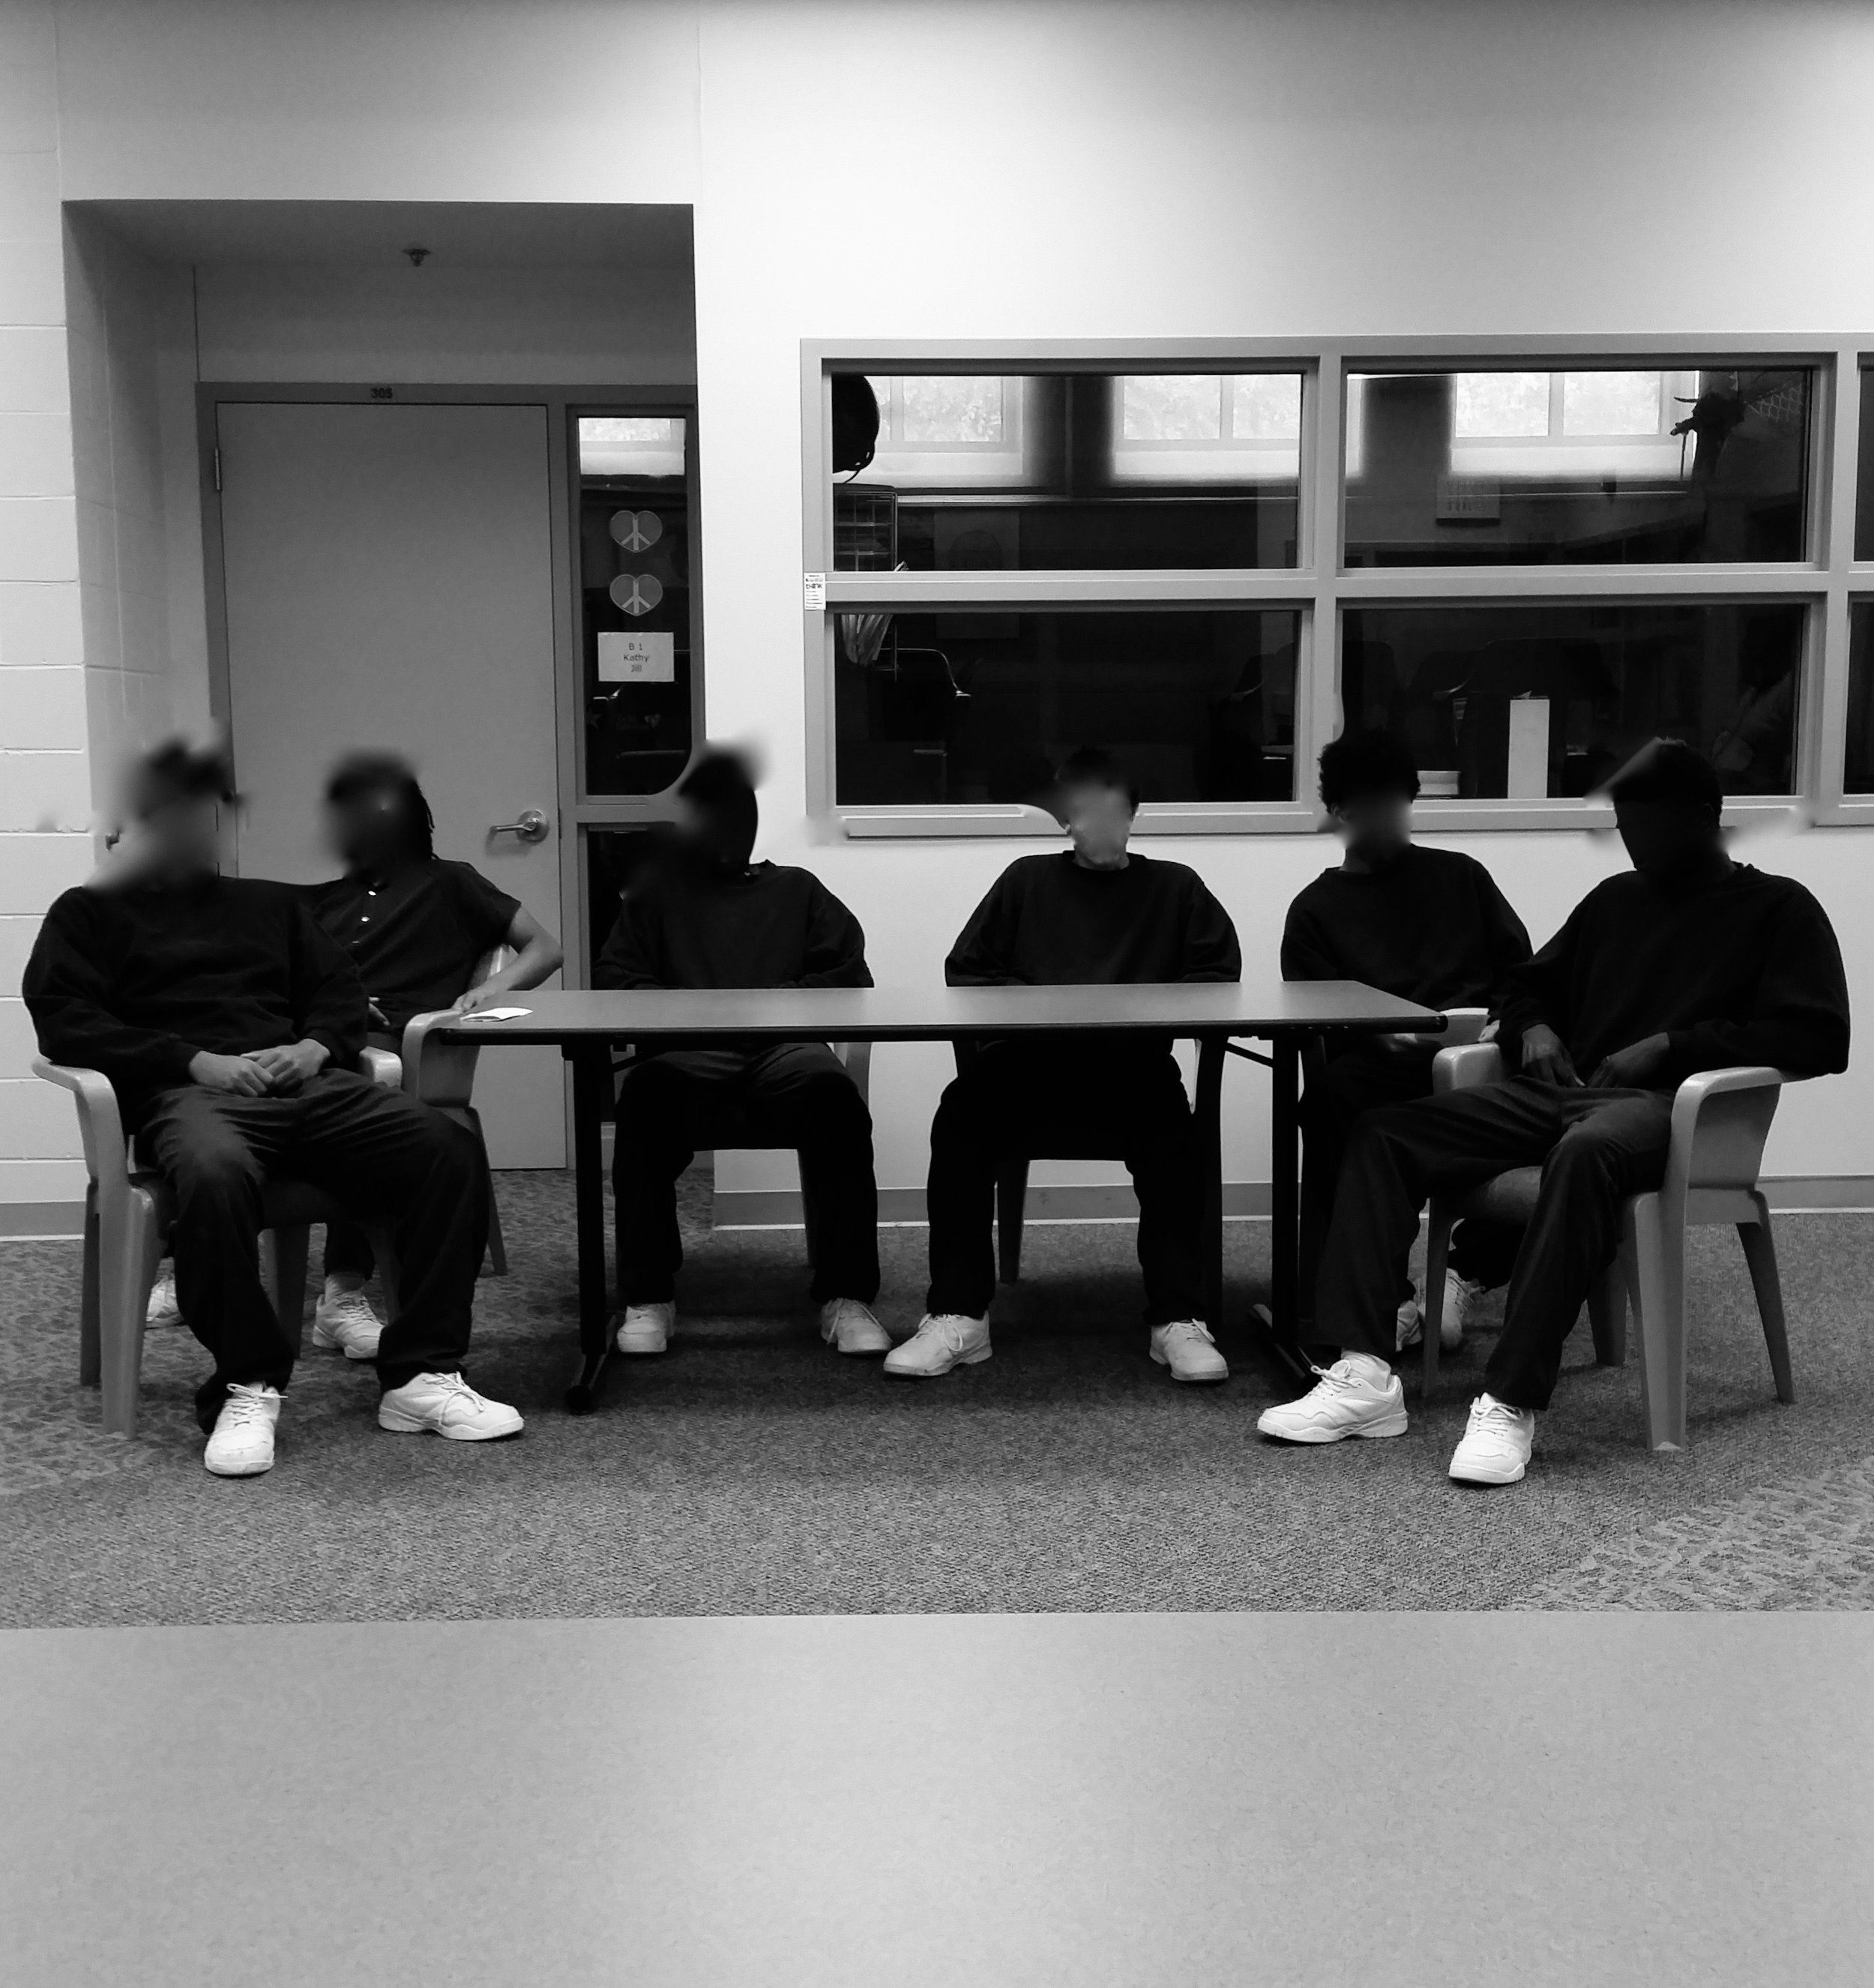 Youth workshop in Des Moines, IA Detention Center. (Faces blurred for anonymity.)